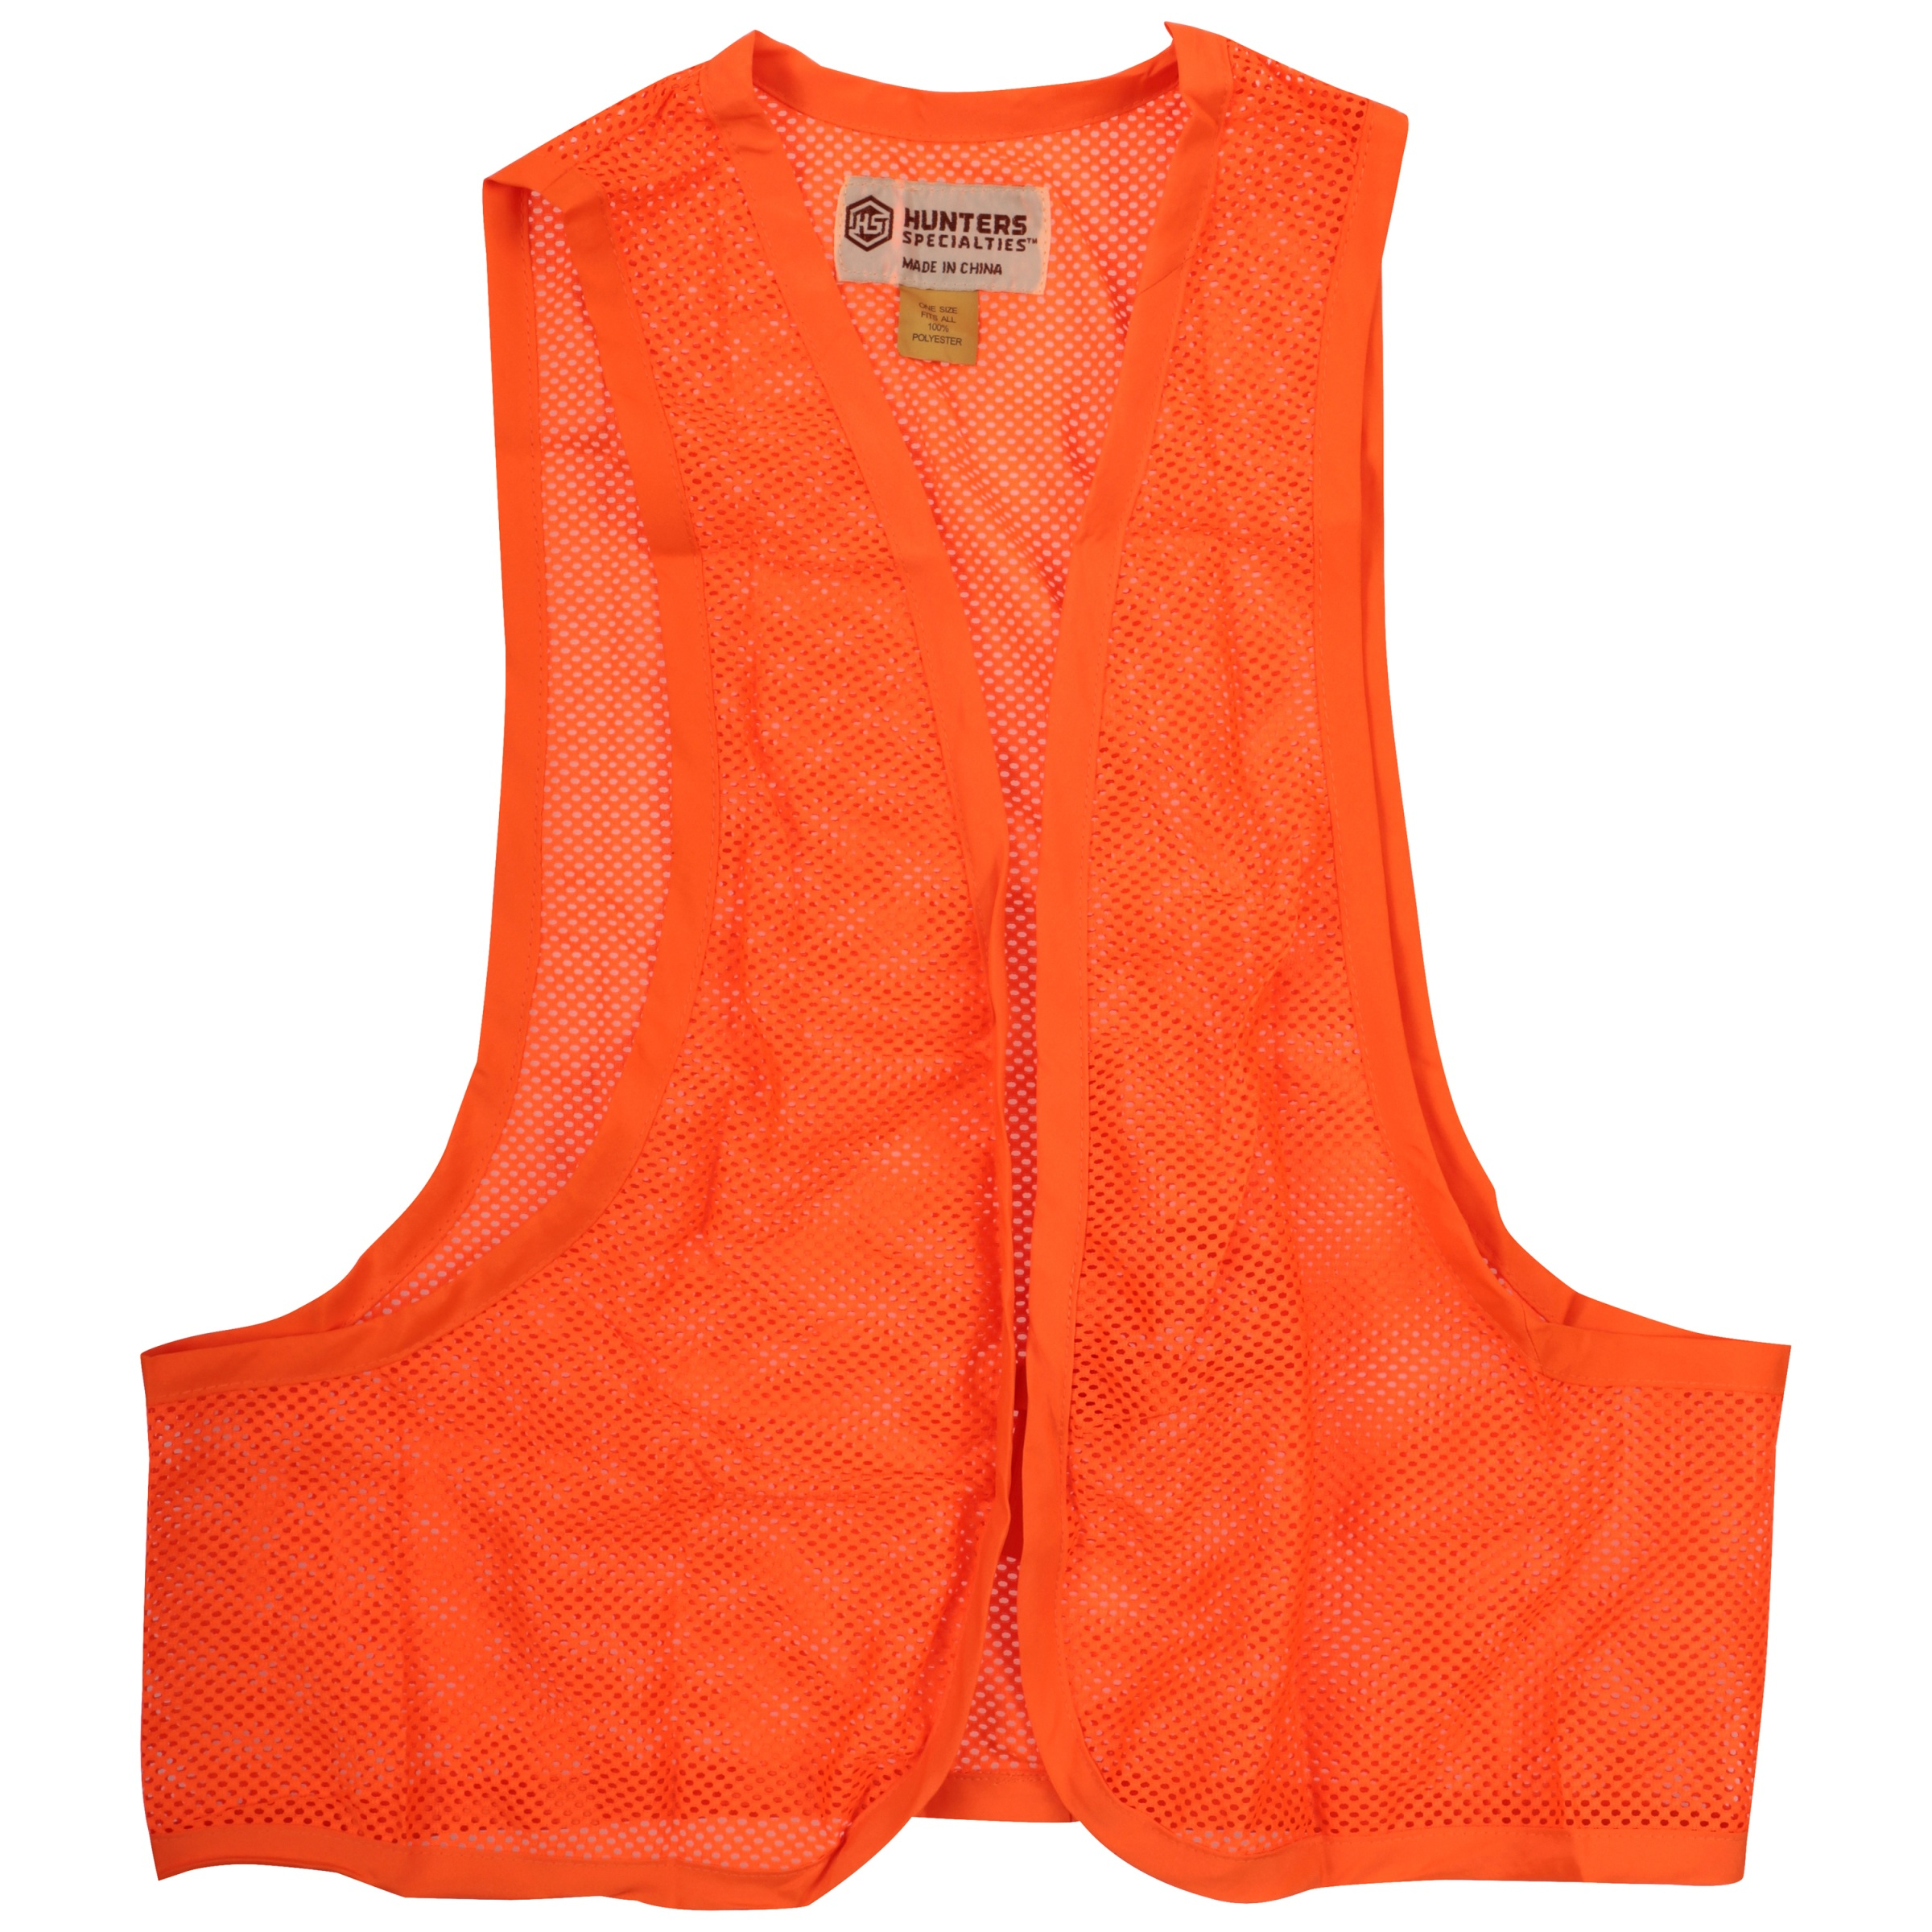 Hunters Specialities Blaze Orange Mesh Safety Vest by Hunters Specialties